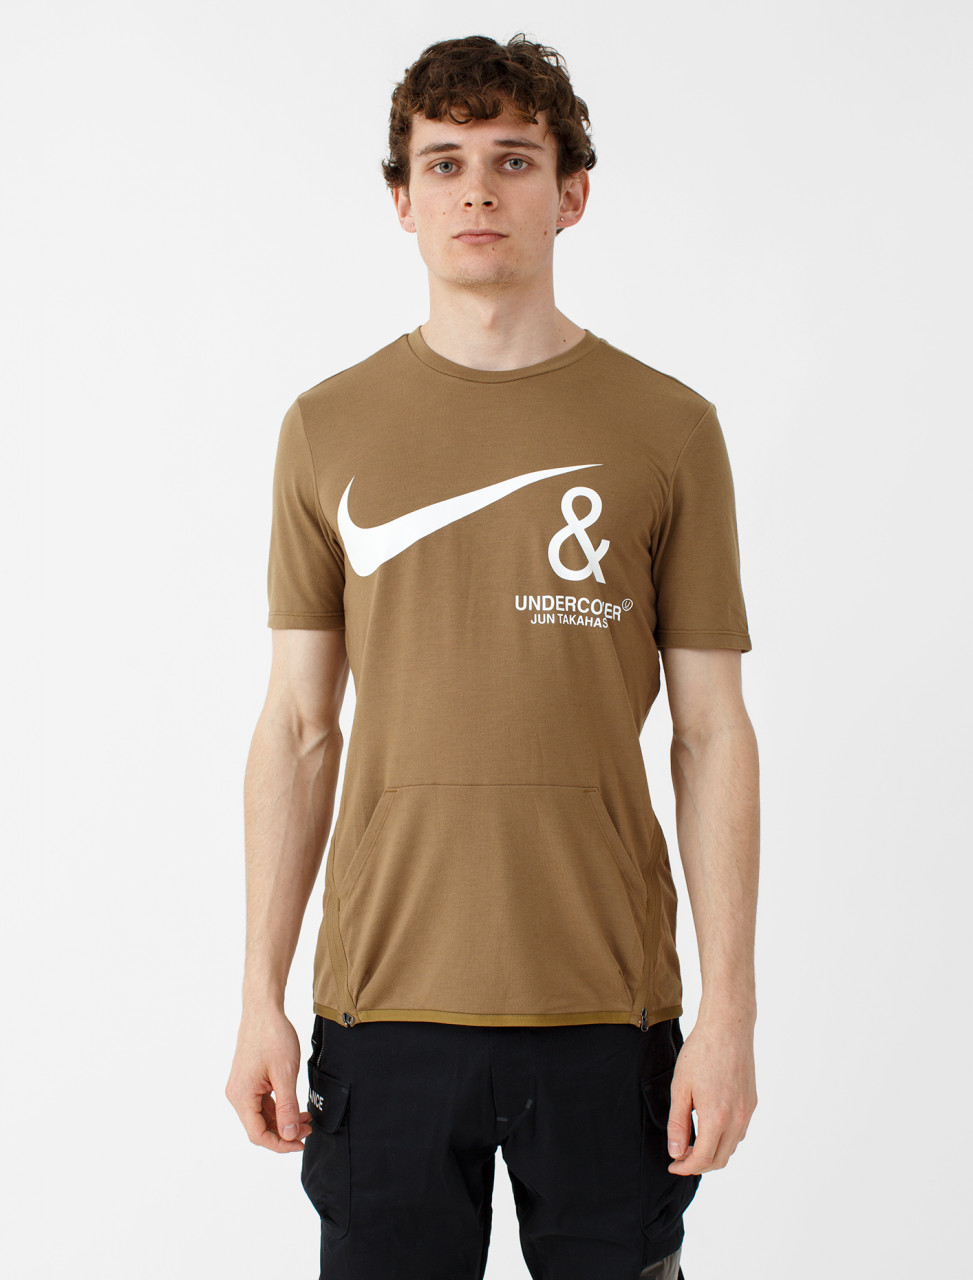 Nike x Undercover Short Sleeve Pocket T-Shirt